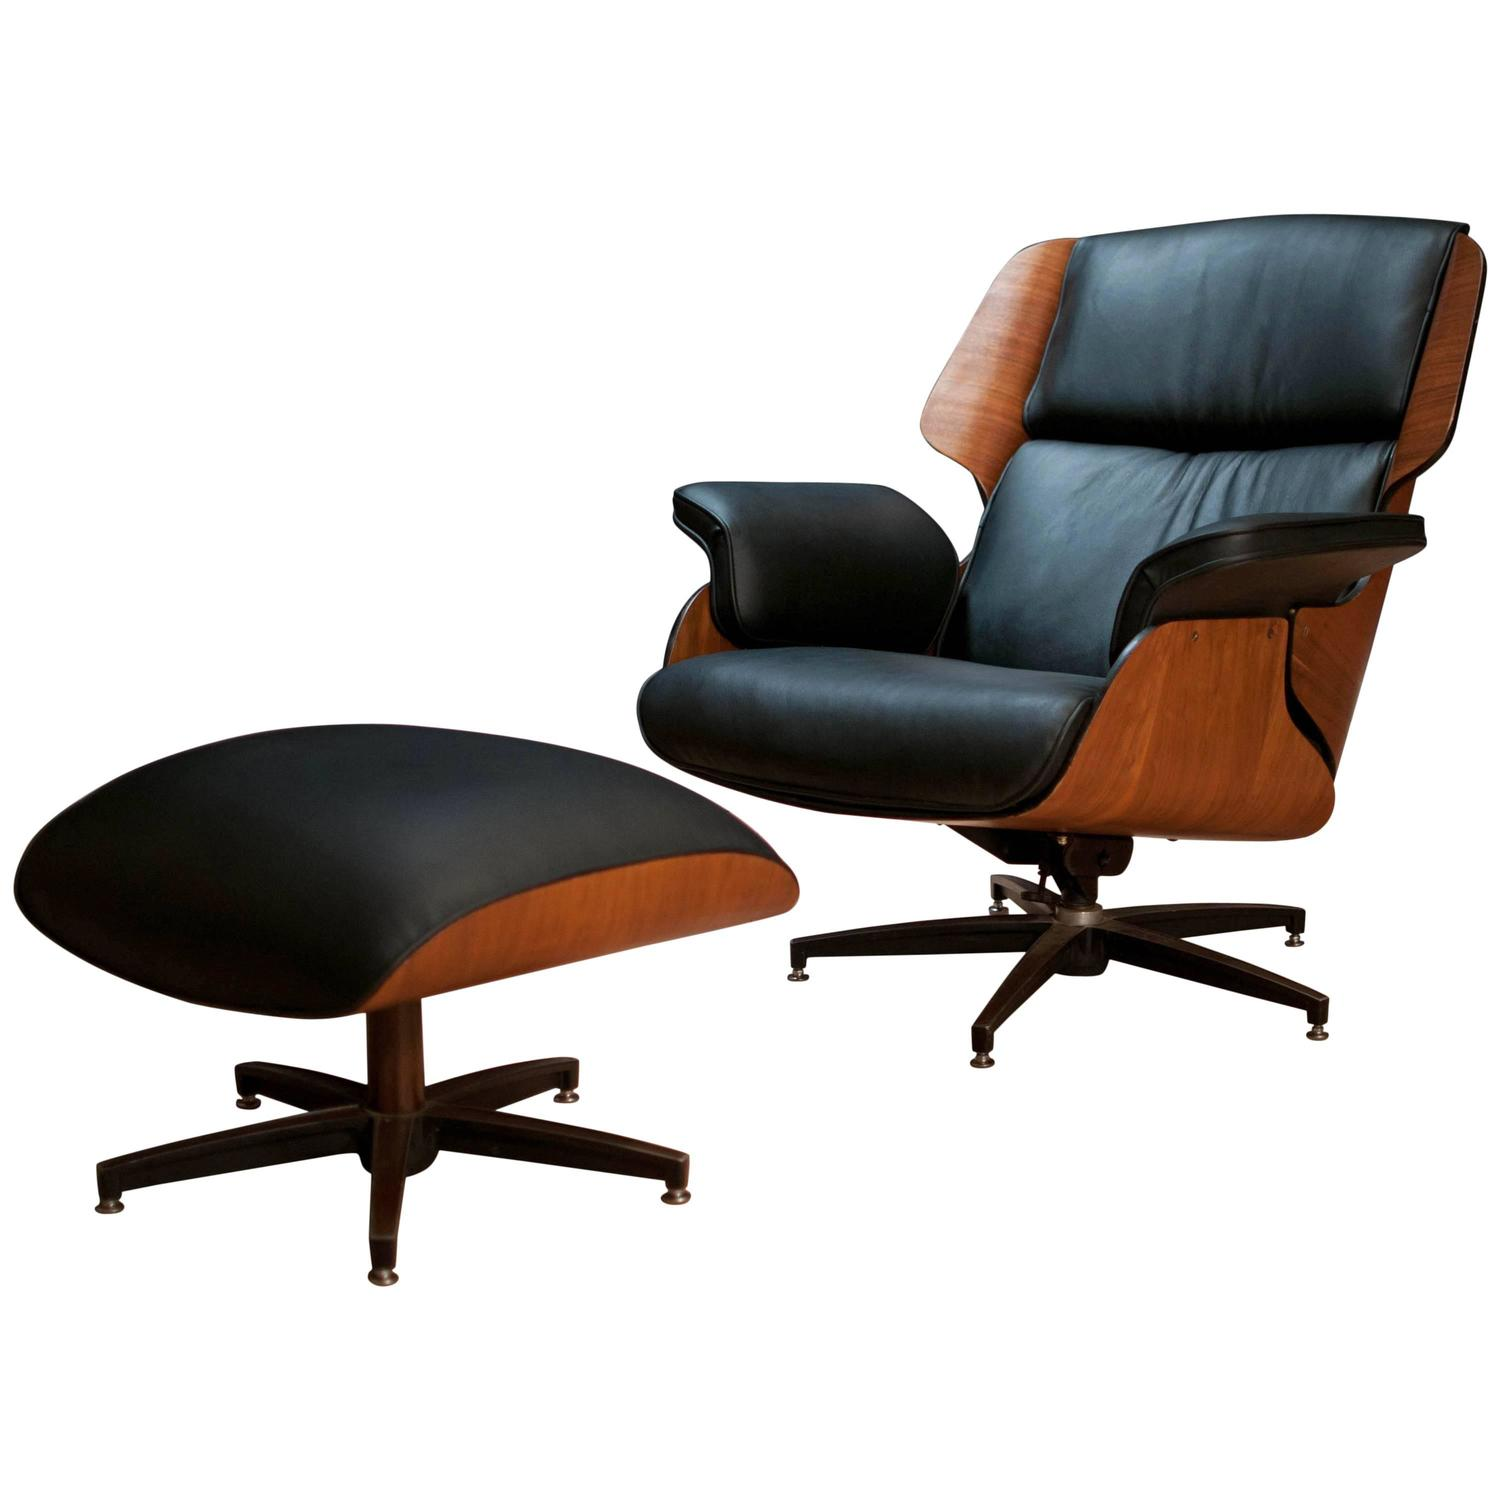 New Eames Style Lounge Chair Luxury